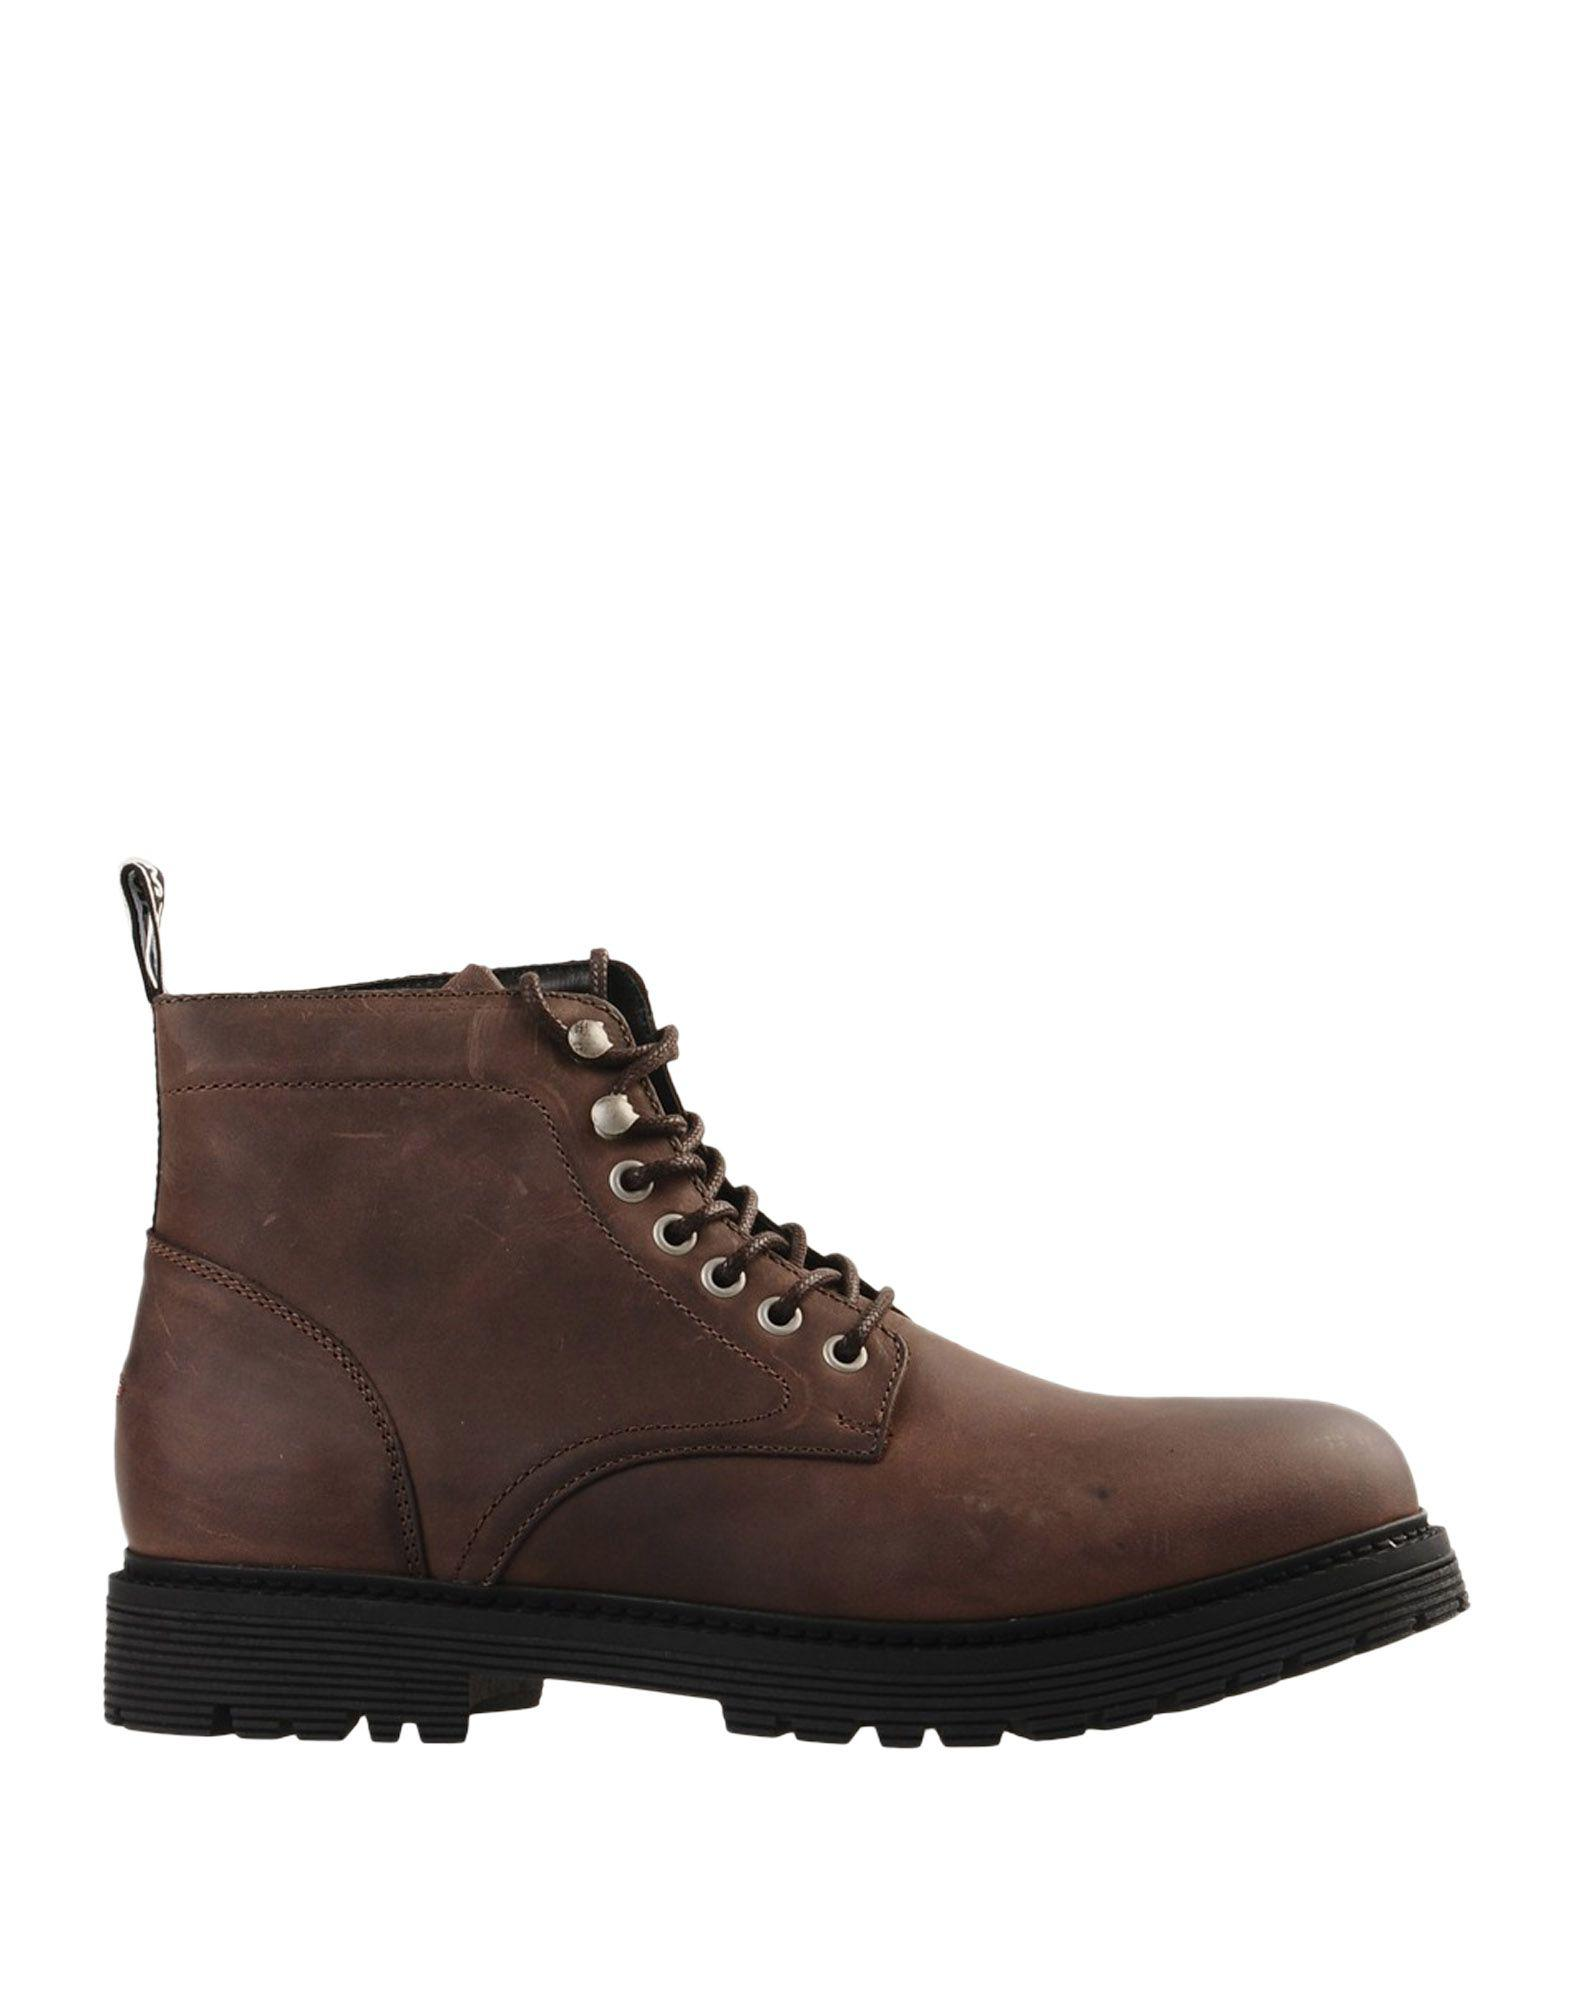 c8b59fb49 Tommy Hilfiger Ankle Boots in Brown for Men - Lyst